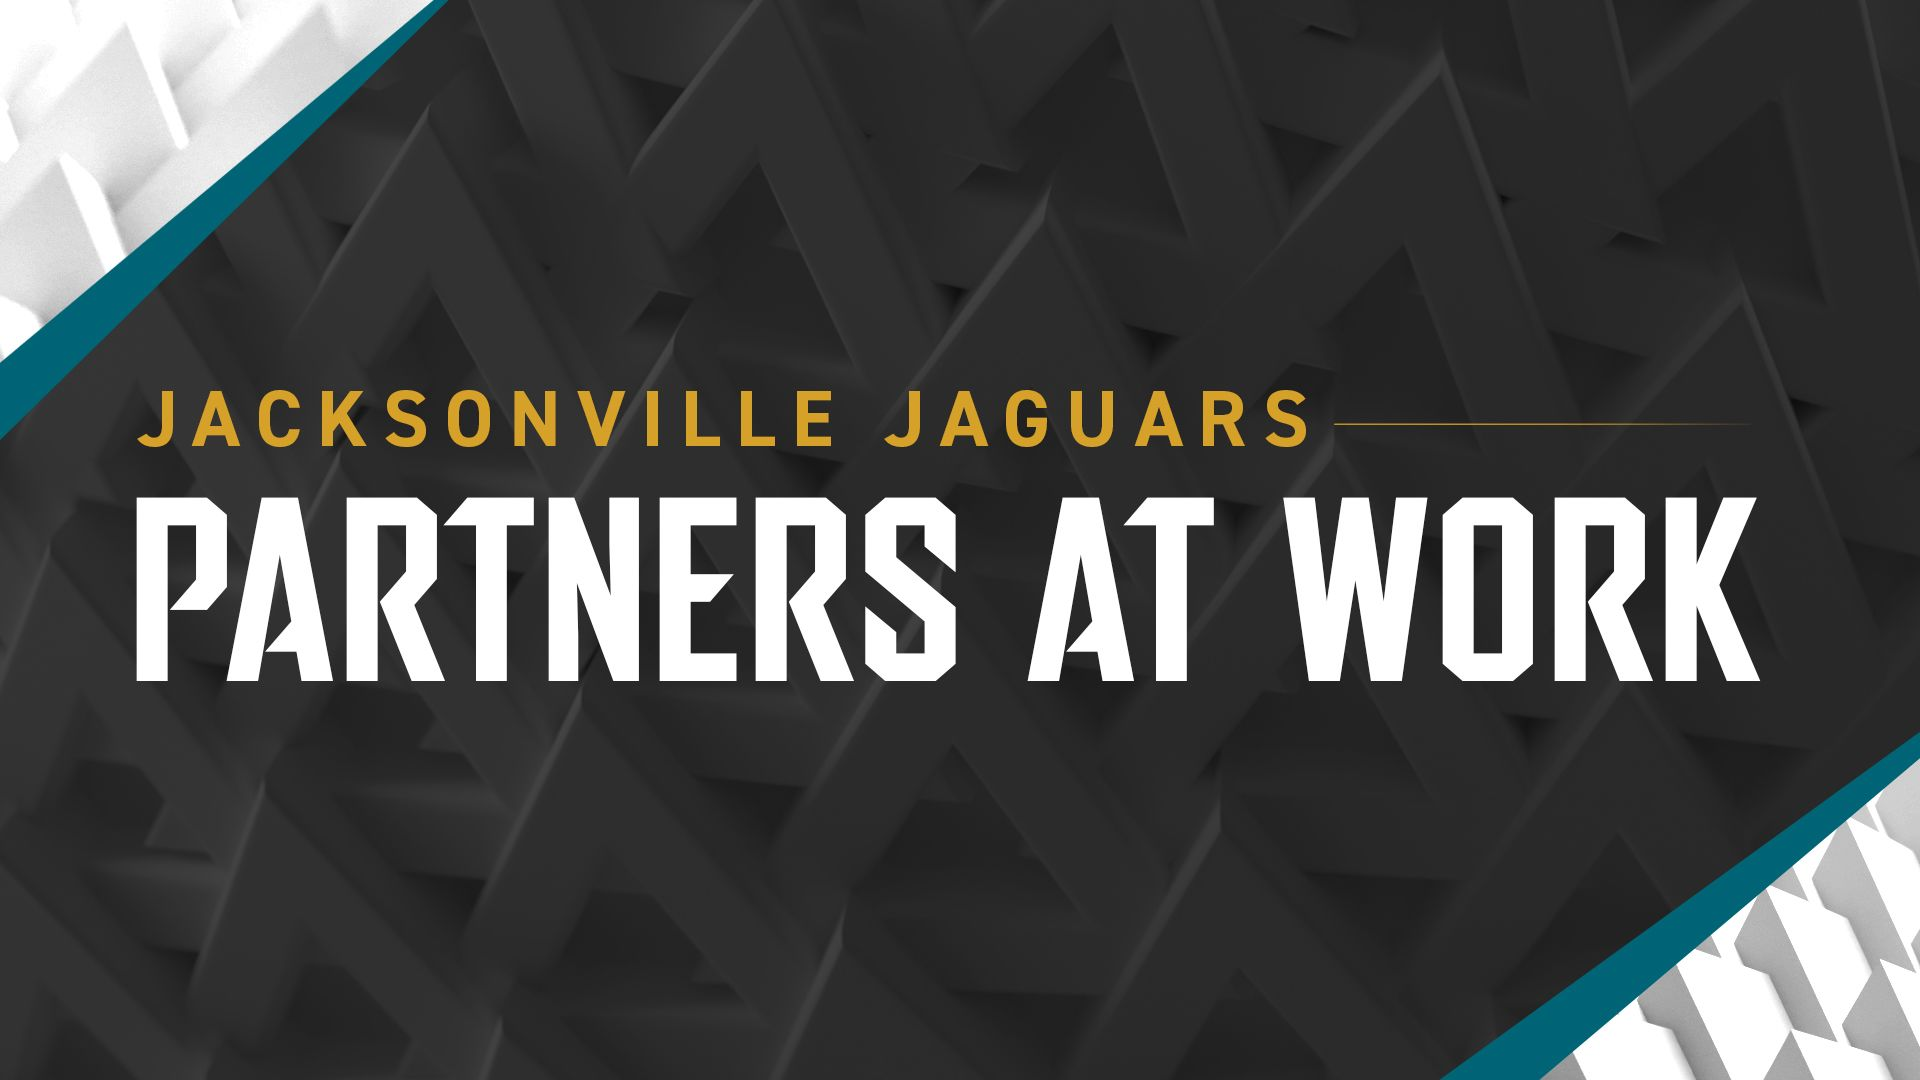 Jaguars Partners at Work